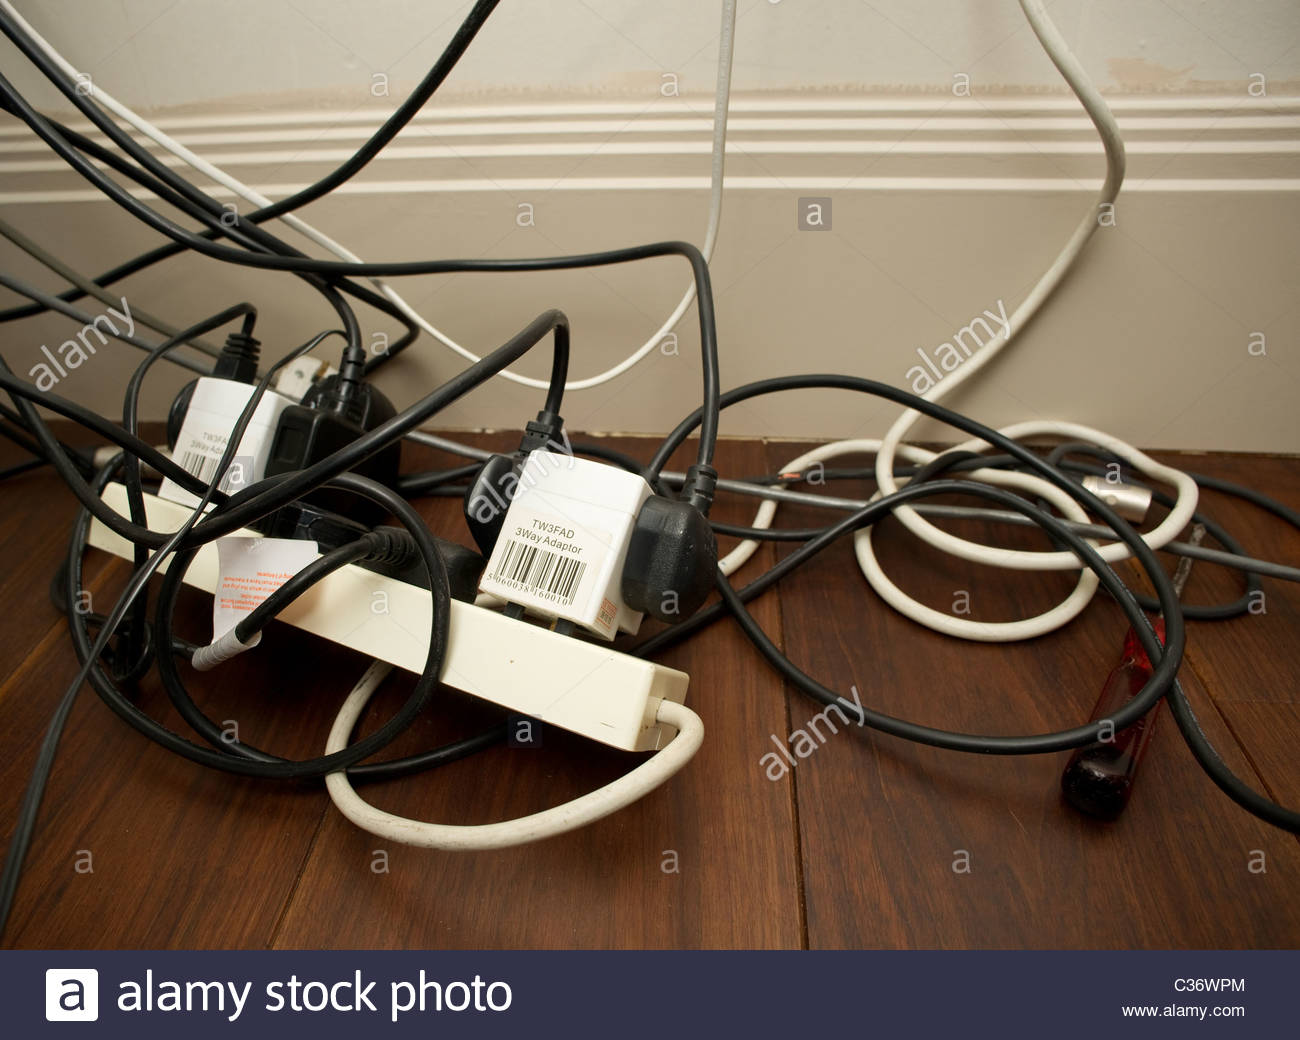 Electrical Wiring Stock Photos Images Alamy Wires And Power Plug Protruding From A Wall During Rewiring By An Messy Appliances Image